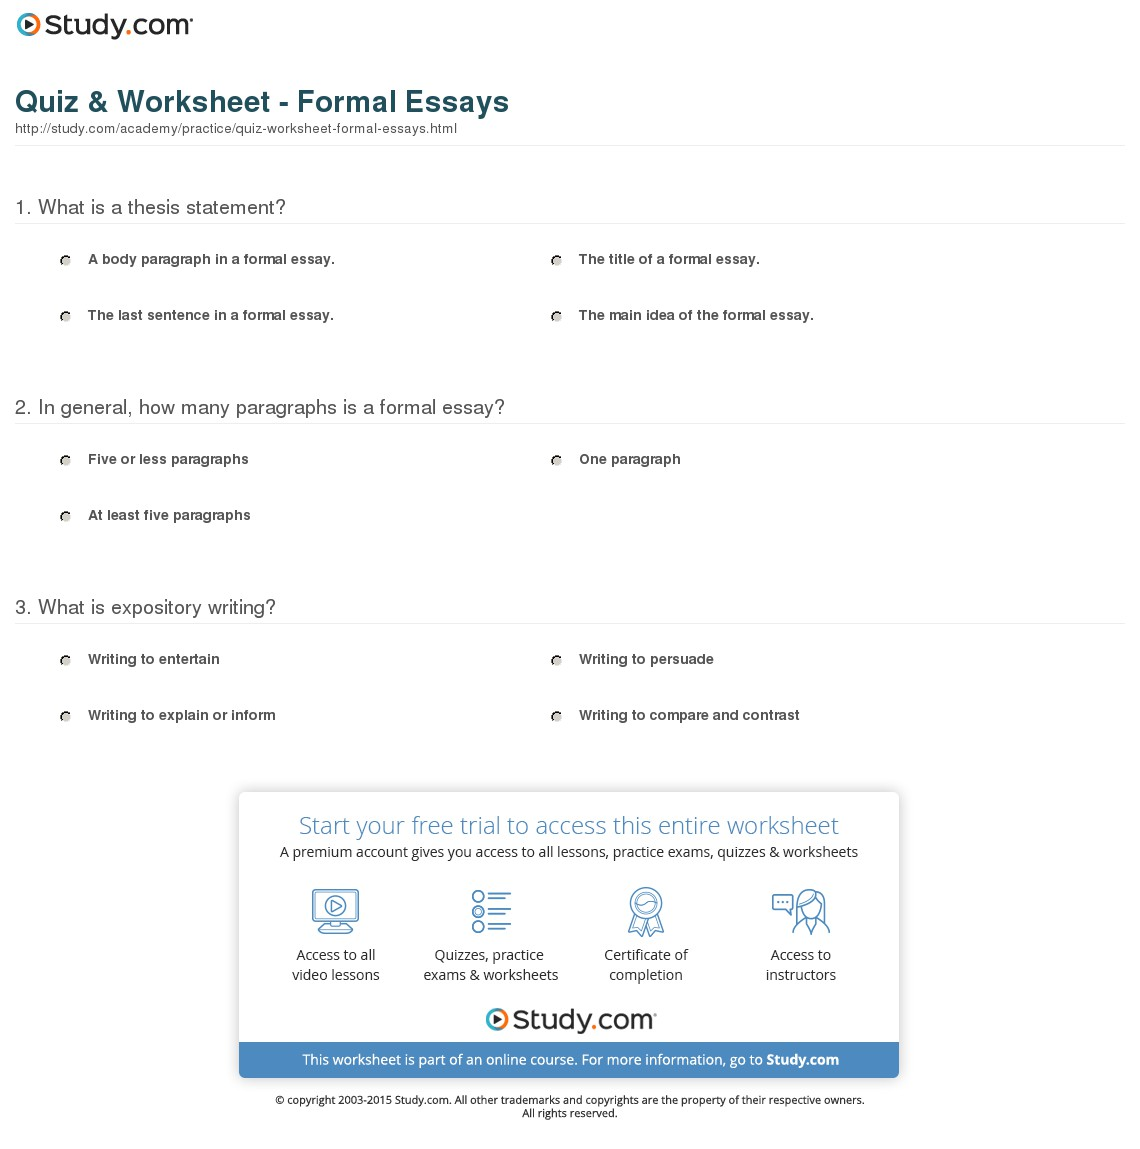 023 Essay Example Quiz Worksheet Formal Essays How Many Paragraphsre In Formidable Paragraphs Are A Argumentative Thematic Synthesis Full